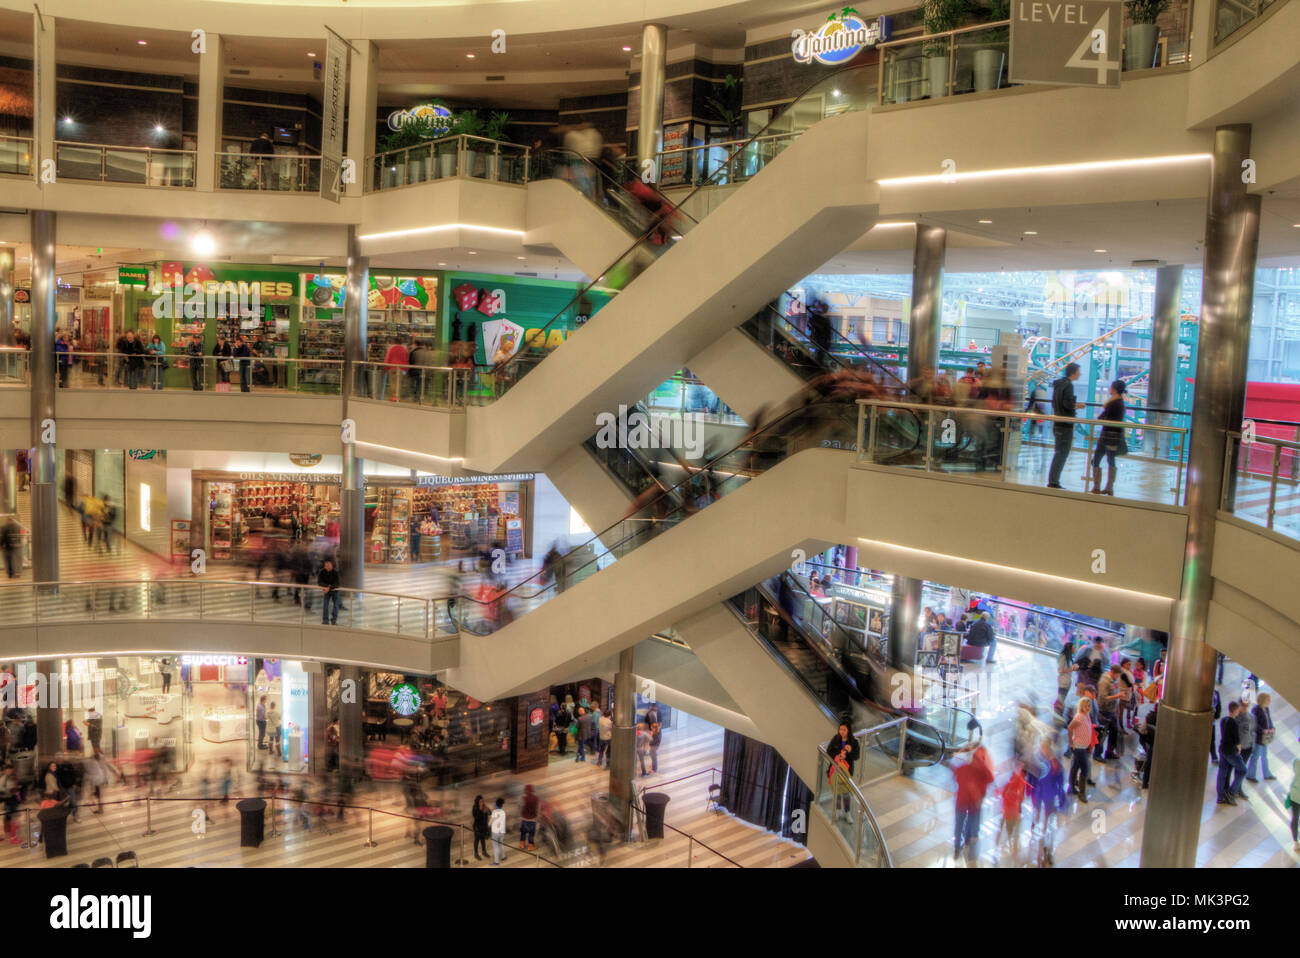 The Mall of America is a Major Shopping Center in The Twin Cities of Minnesota known Nationwide - Stock Image